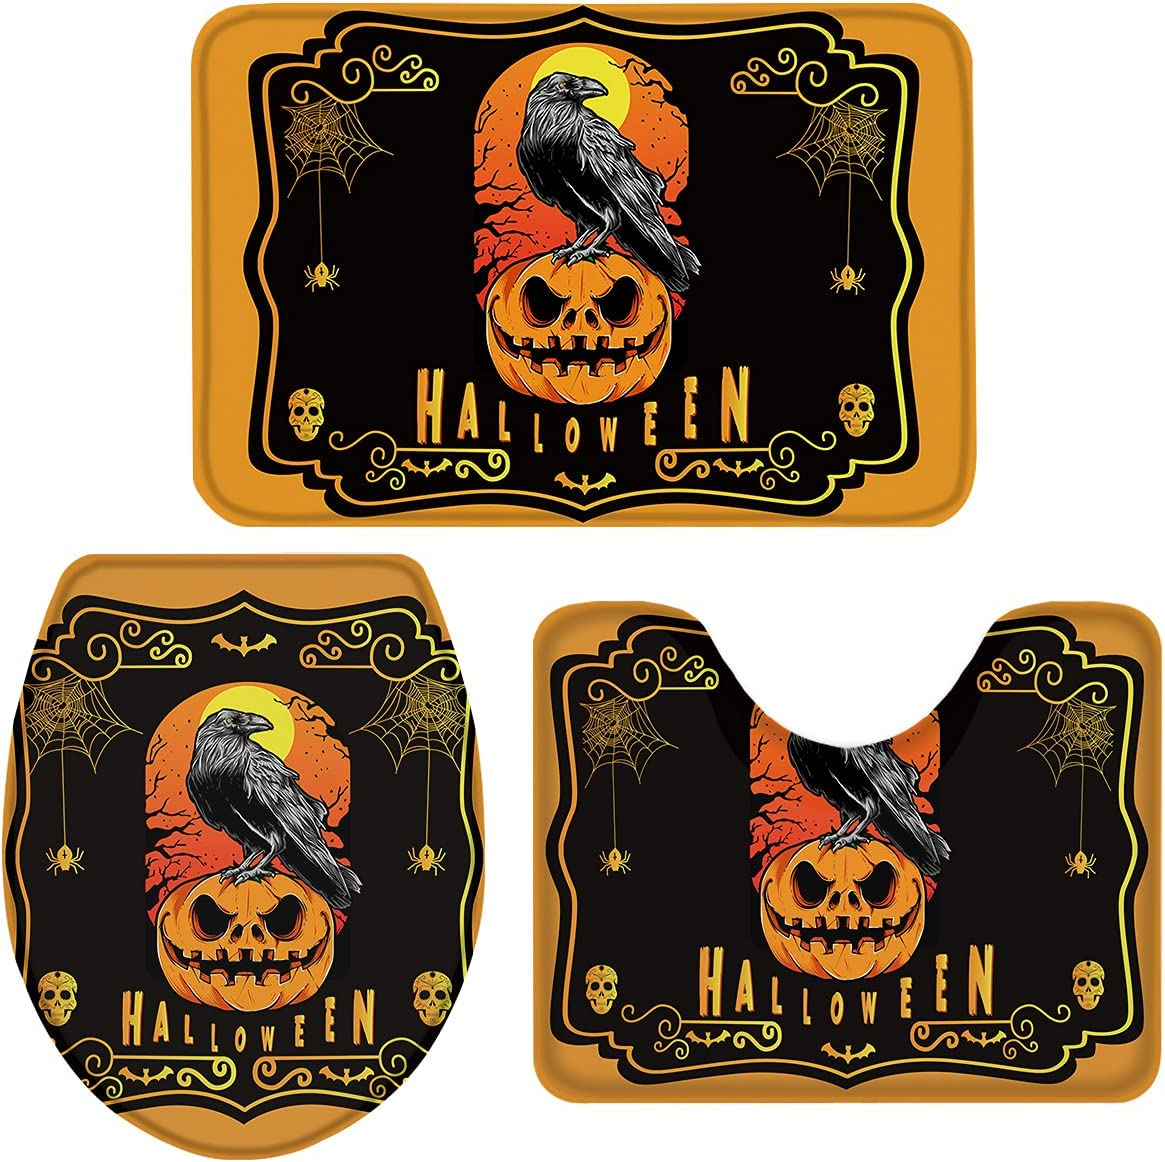 Halloween 3 Piece Many popular brands Bath Rugs Sets Pumpkin The Standing Super sale period limited Ba on Crow